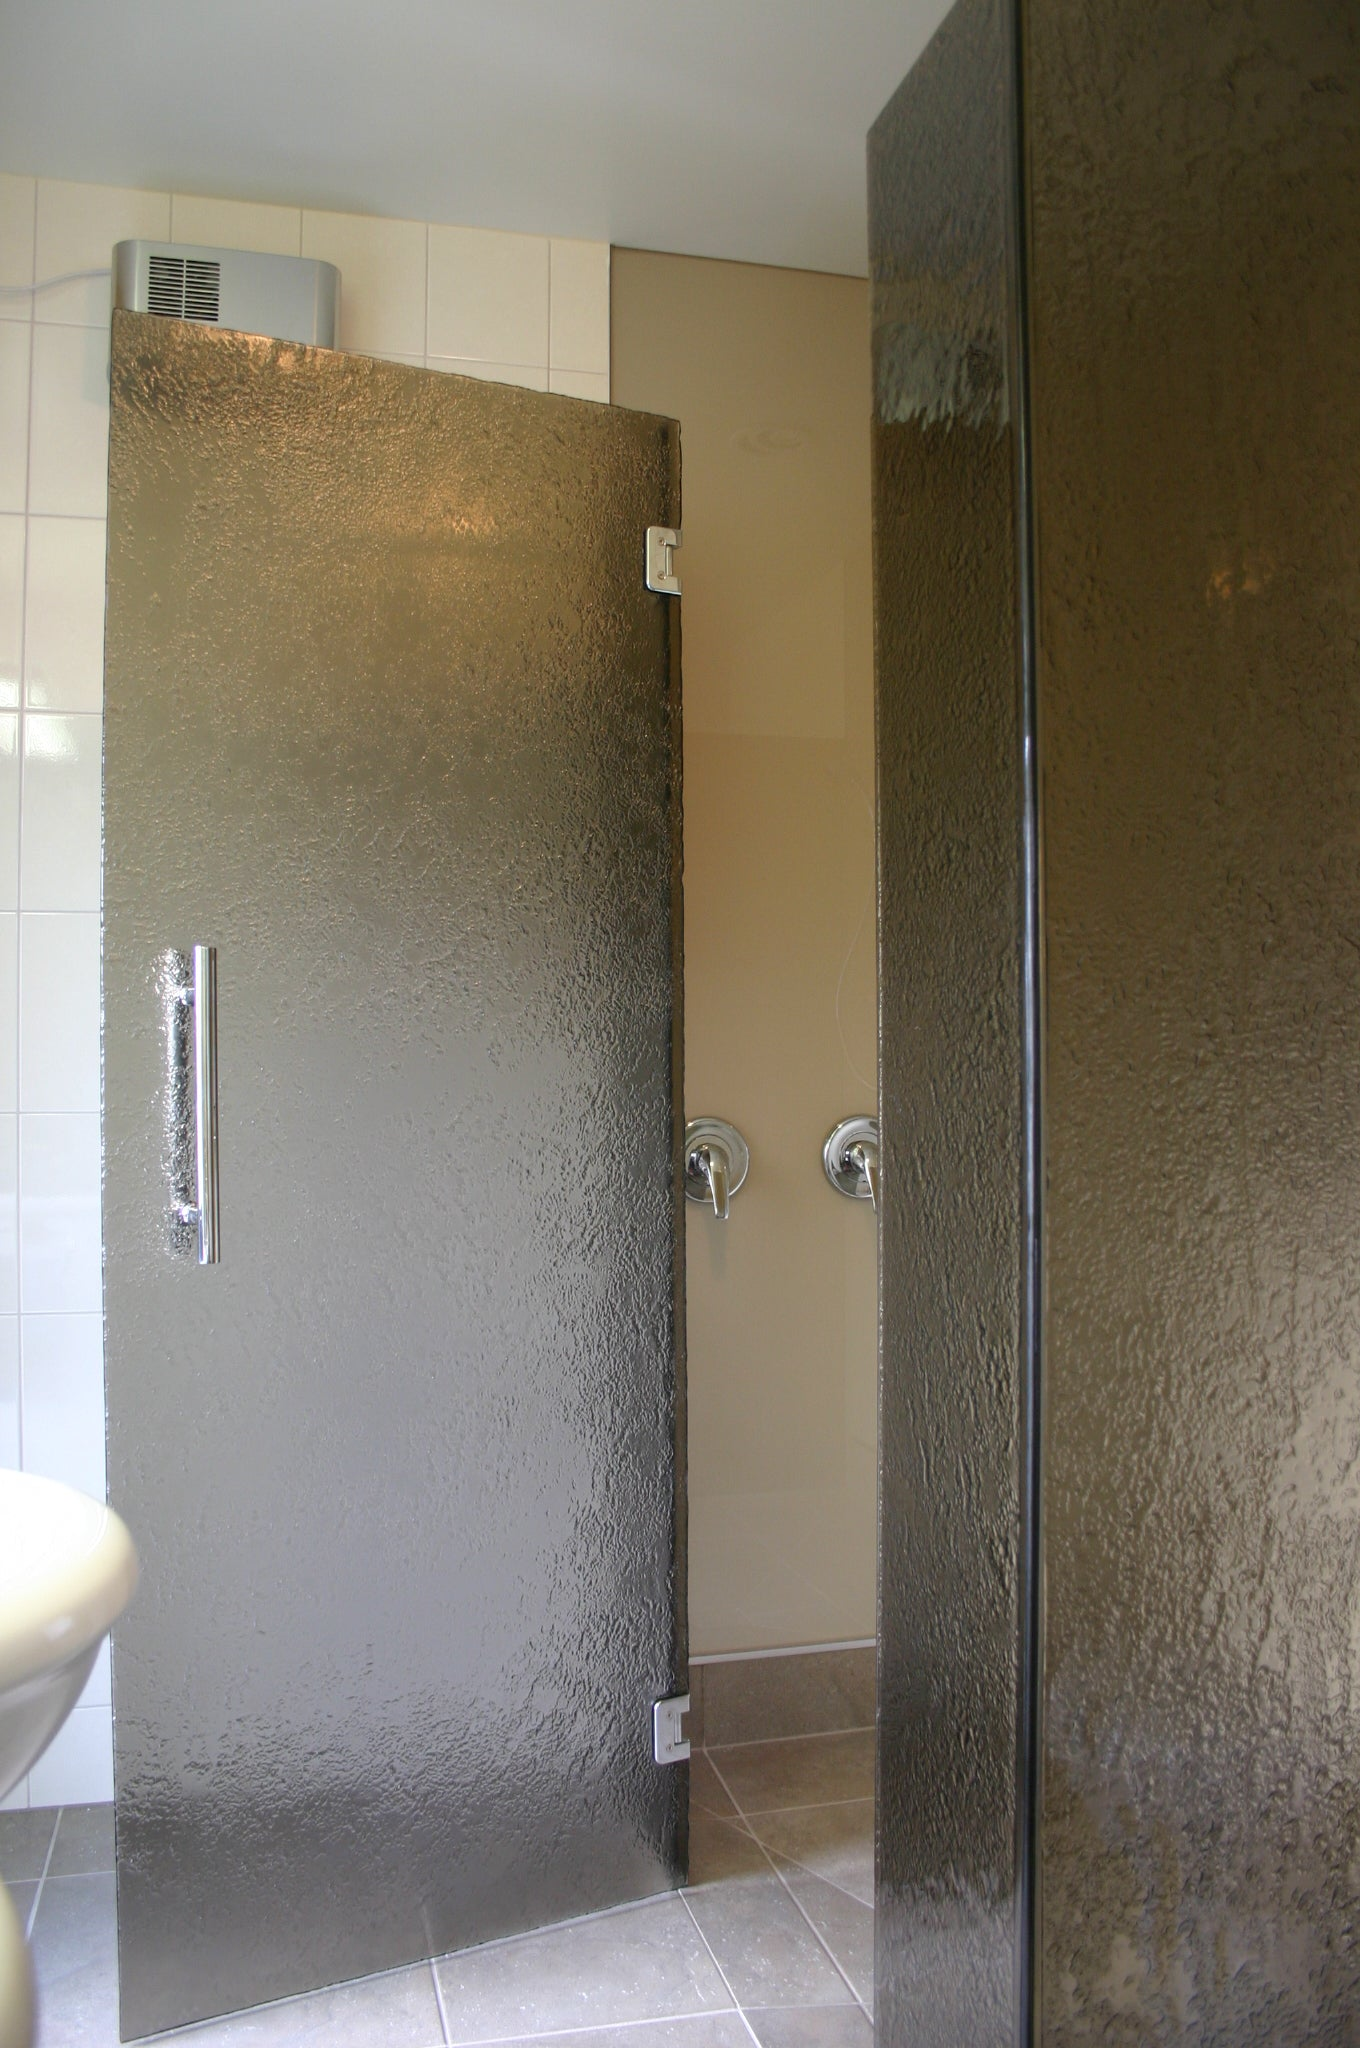 Sliding Shower Sliding Showers are the modern alternative to hinged doors. They are ideal for an area where there is not enough room for a door to swing into the bathroom, Our suspended sliding doors systems use stainless steel components for an engineered smooth movement.  Sliding Showers are available in Square/Corner Showers as well as inline showers     At Viridian Glass we custom make all of our showers to work with the space you have in your bathroom  All toughened safety glass and installations meet Building Code and NZS 4223.3 Human Impact Safety Requirements.     Why Choose a Sliding Shower? Sliding showers are both stylish and functional. Frameless glass Sliding shower enclosures look incredible and are ideal for bathrooms of all sizes. A sliding glass shower door is a clean and modern design, saving on bathroom space when compared with the footprint of a swing panel door. Sliding Showers Recommendations Viridian Glass recommends a minimum width of 1200mm for a sliding shower.